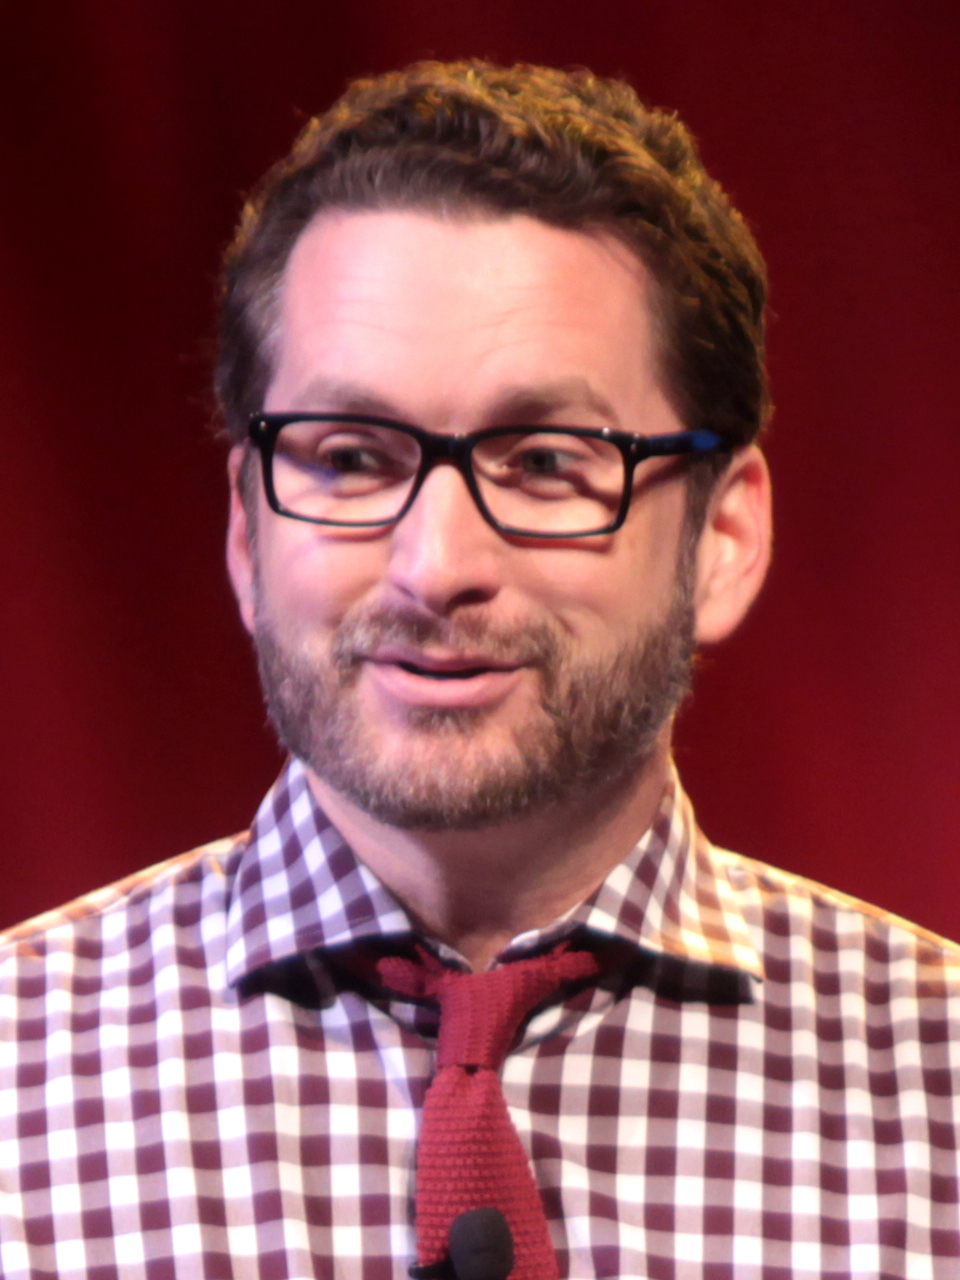 The 45-year old son of father (?) and mother(?) Burnie Burns in 2018 photo. Burnie Burns earned a  million dollar salary - leaving the net worth at 5 million in 2018